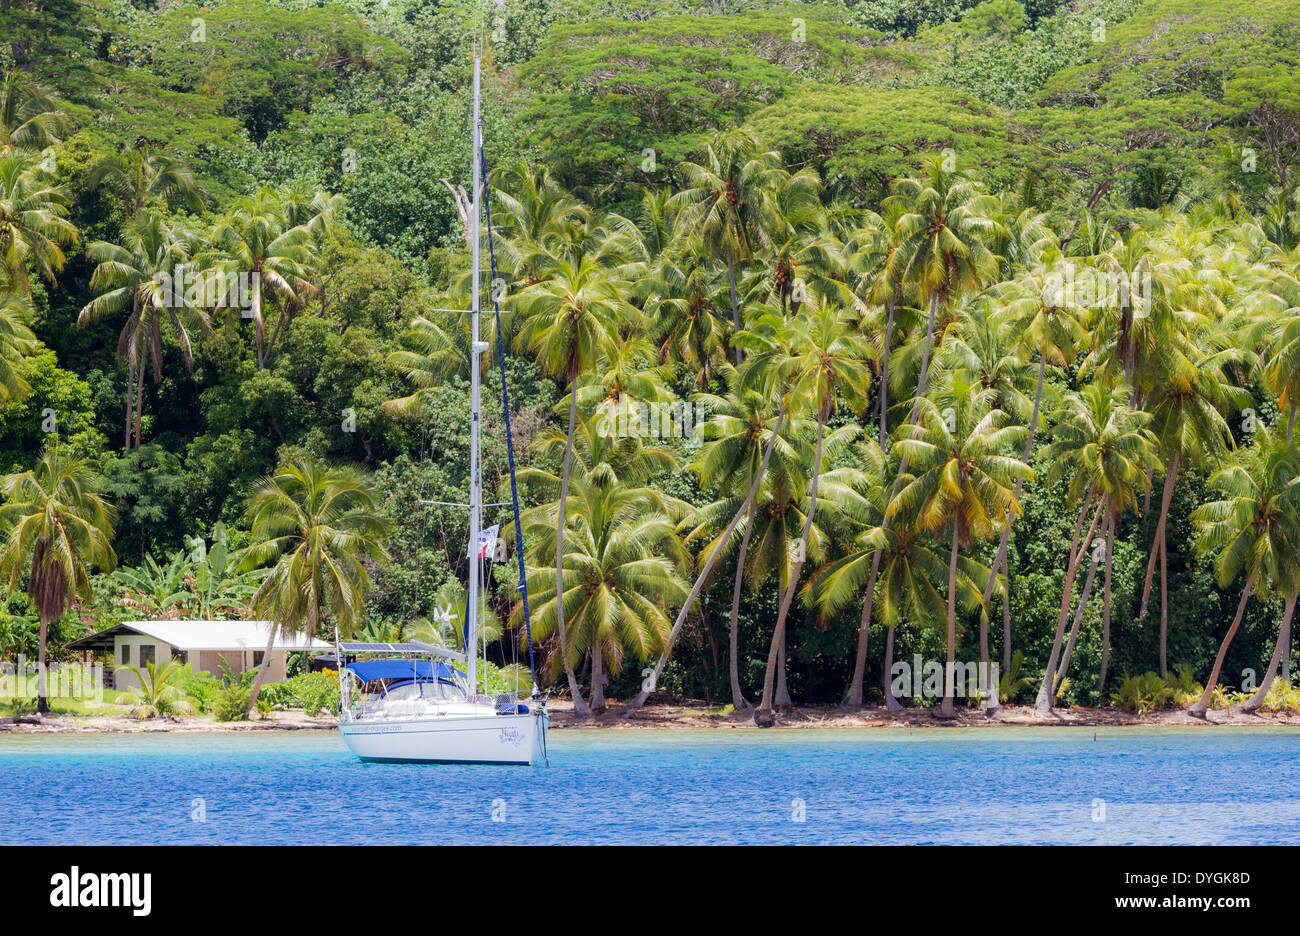 Tropical scene of sailboat anchored in front of palm trees and house in French Polynesia - Stock Image